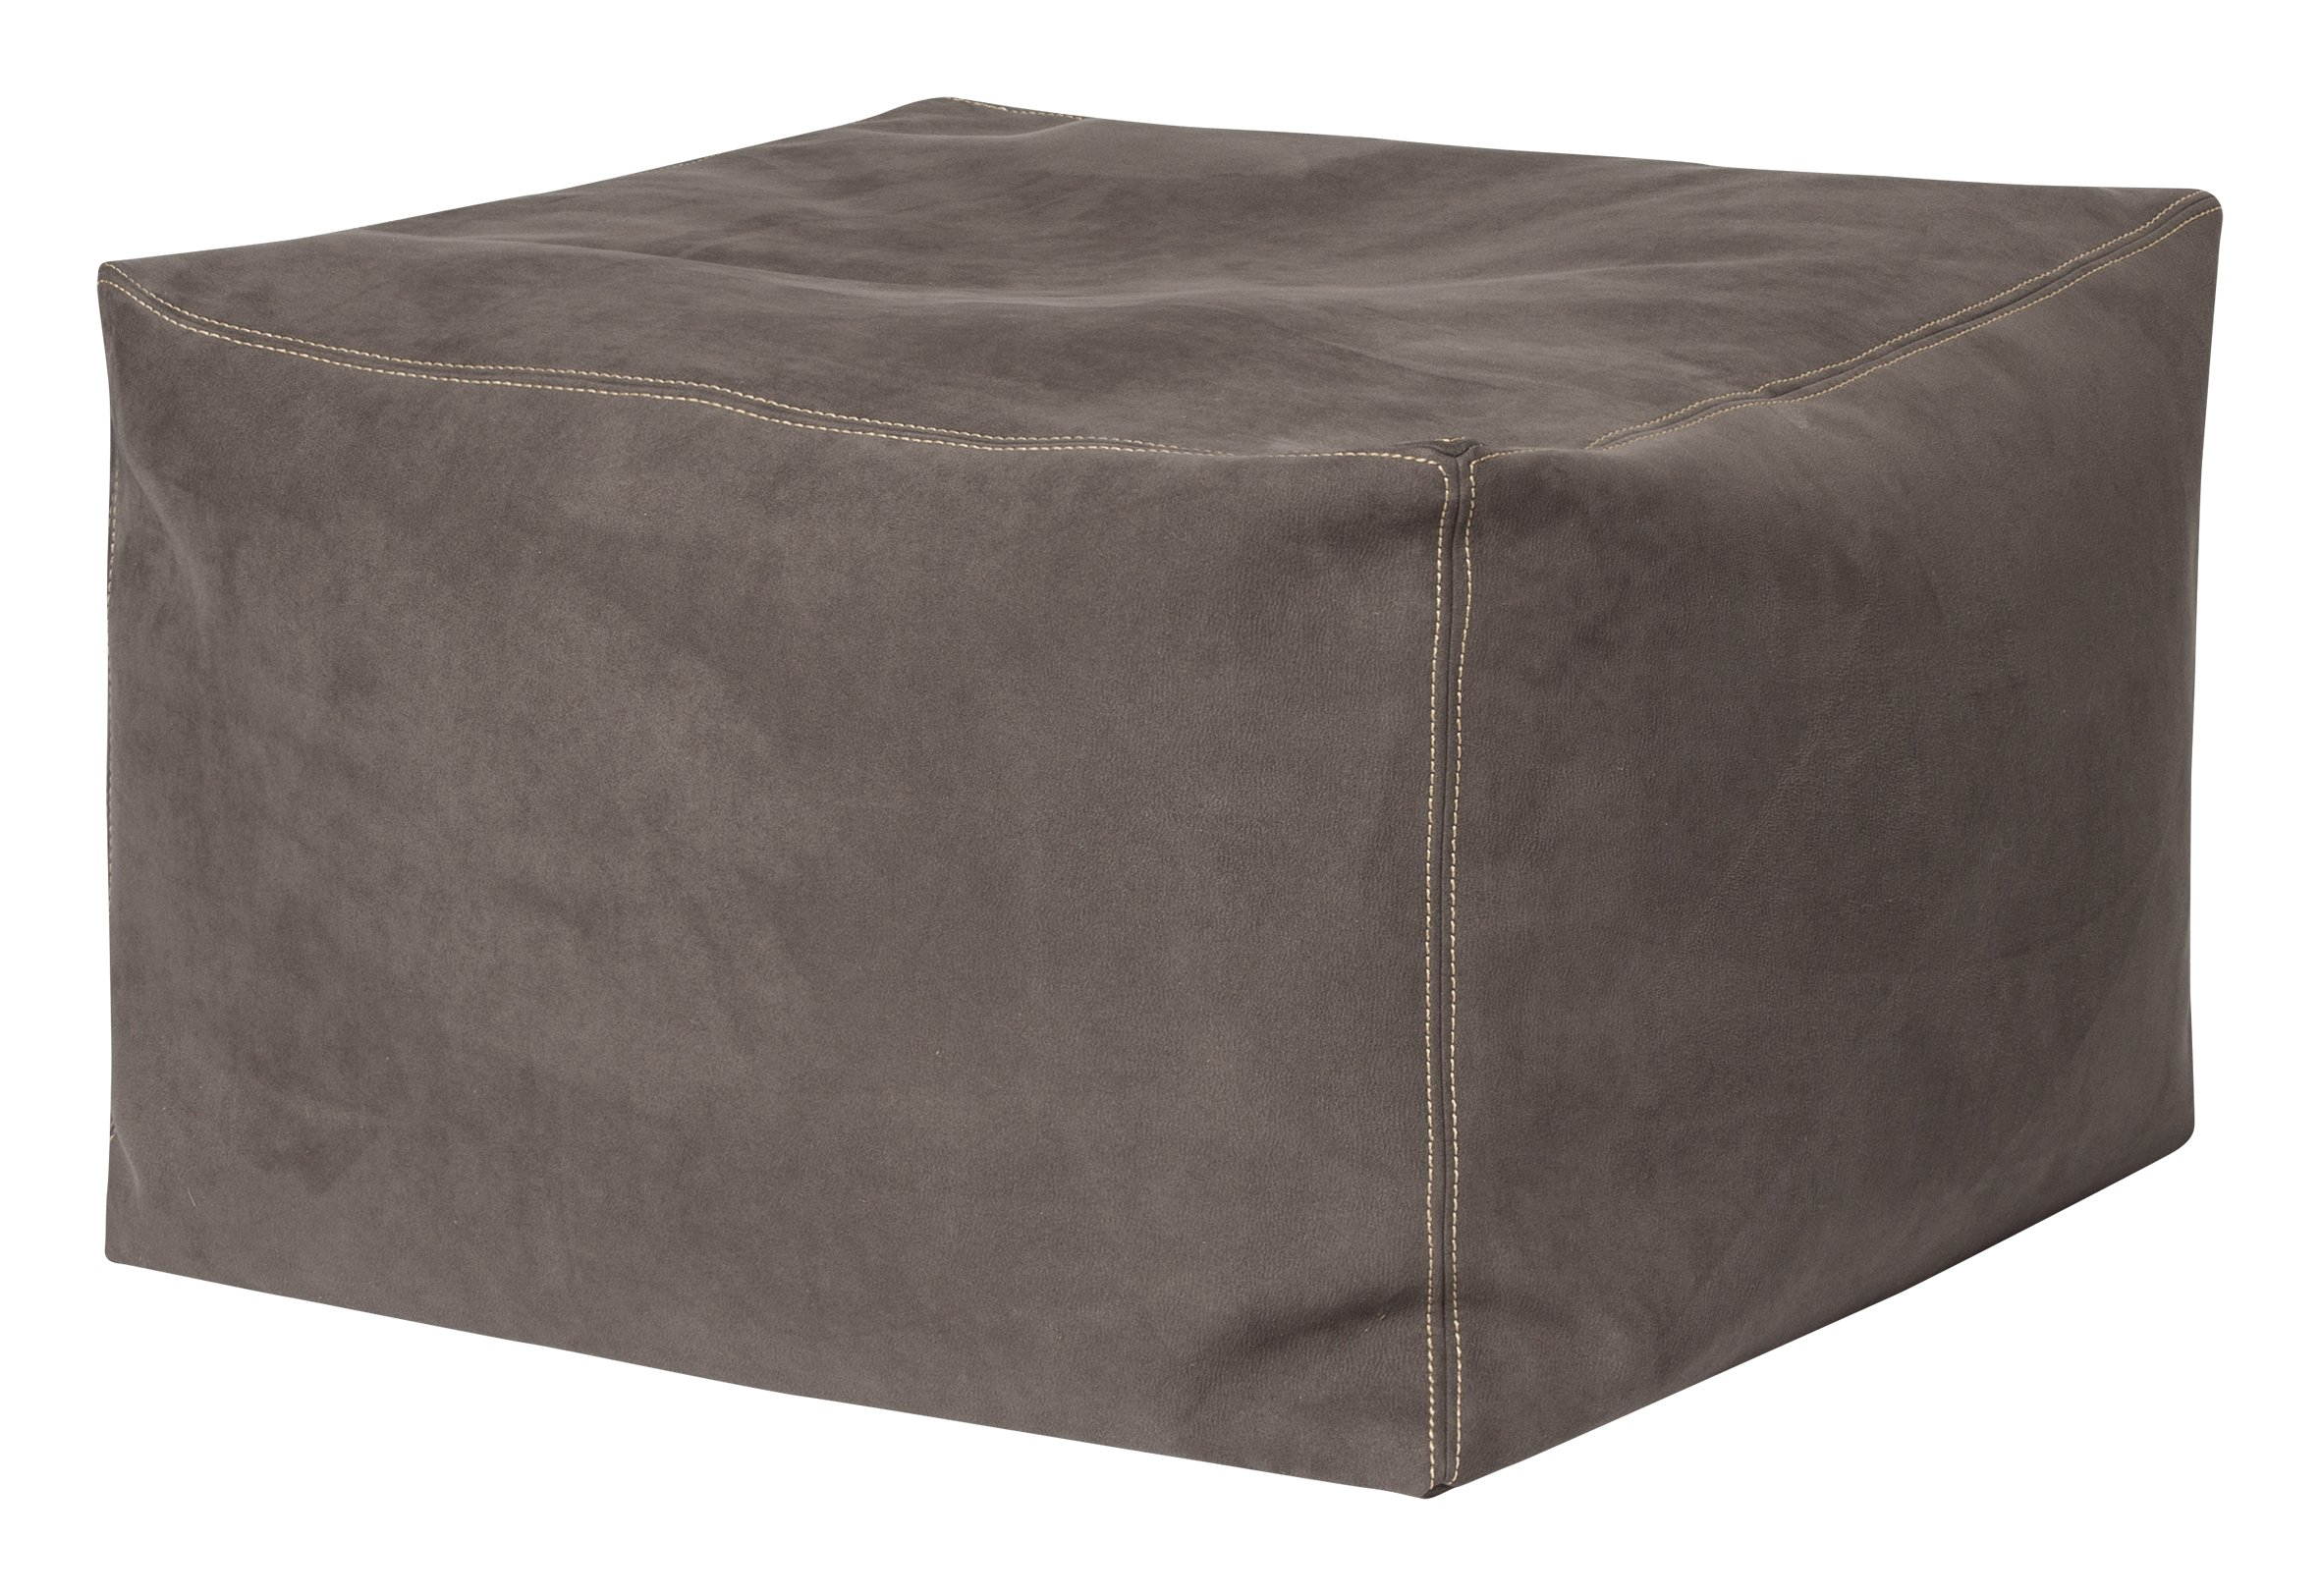 Gouchee Home Loft Bob Collection Contemporary Faux Suede Fabric Upholstered Amp Design Square Pouf/Ottoman, Brown